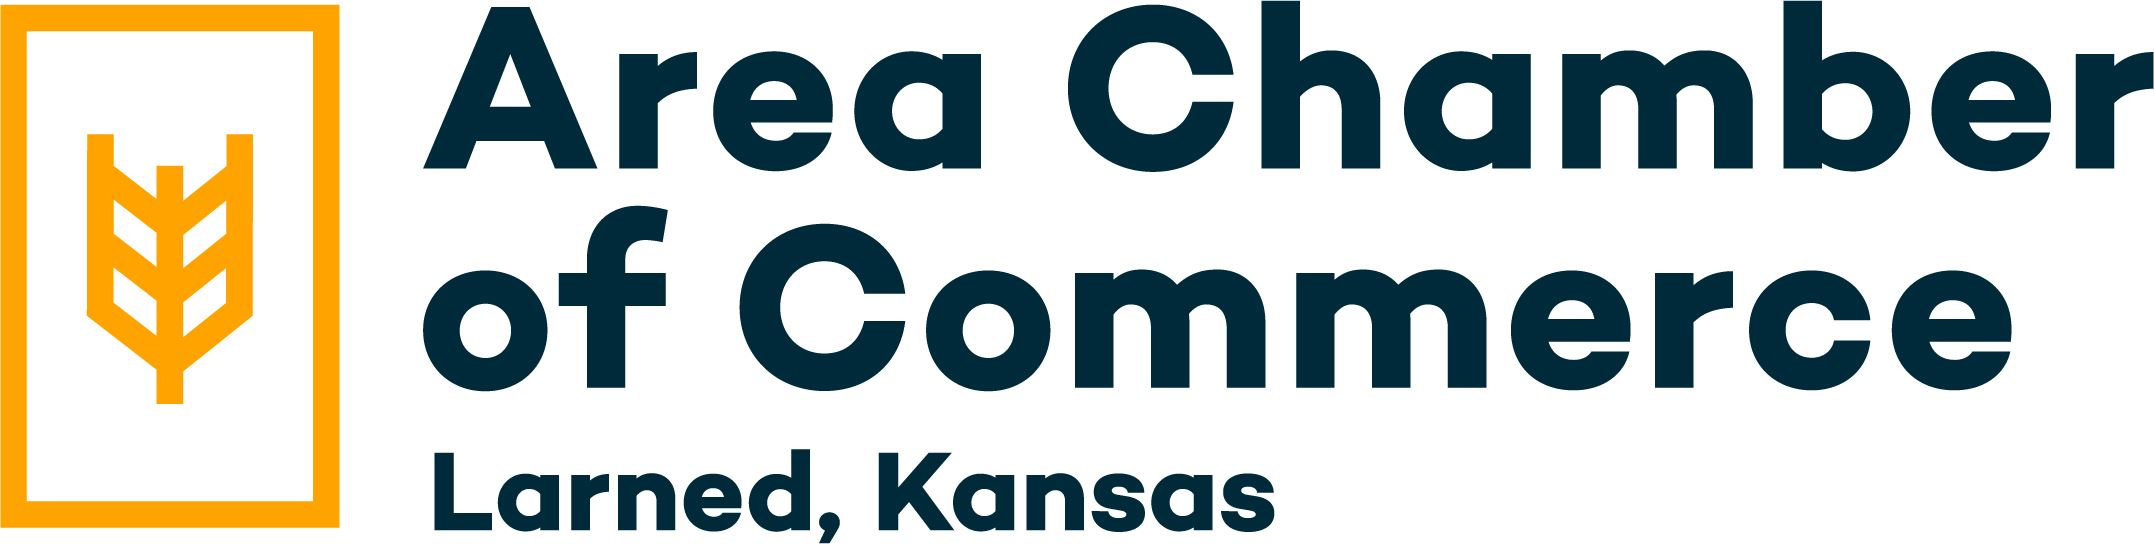 larned-chamber-logo